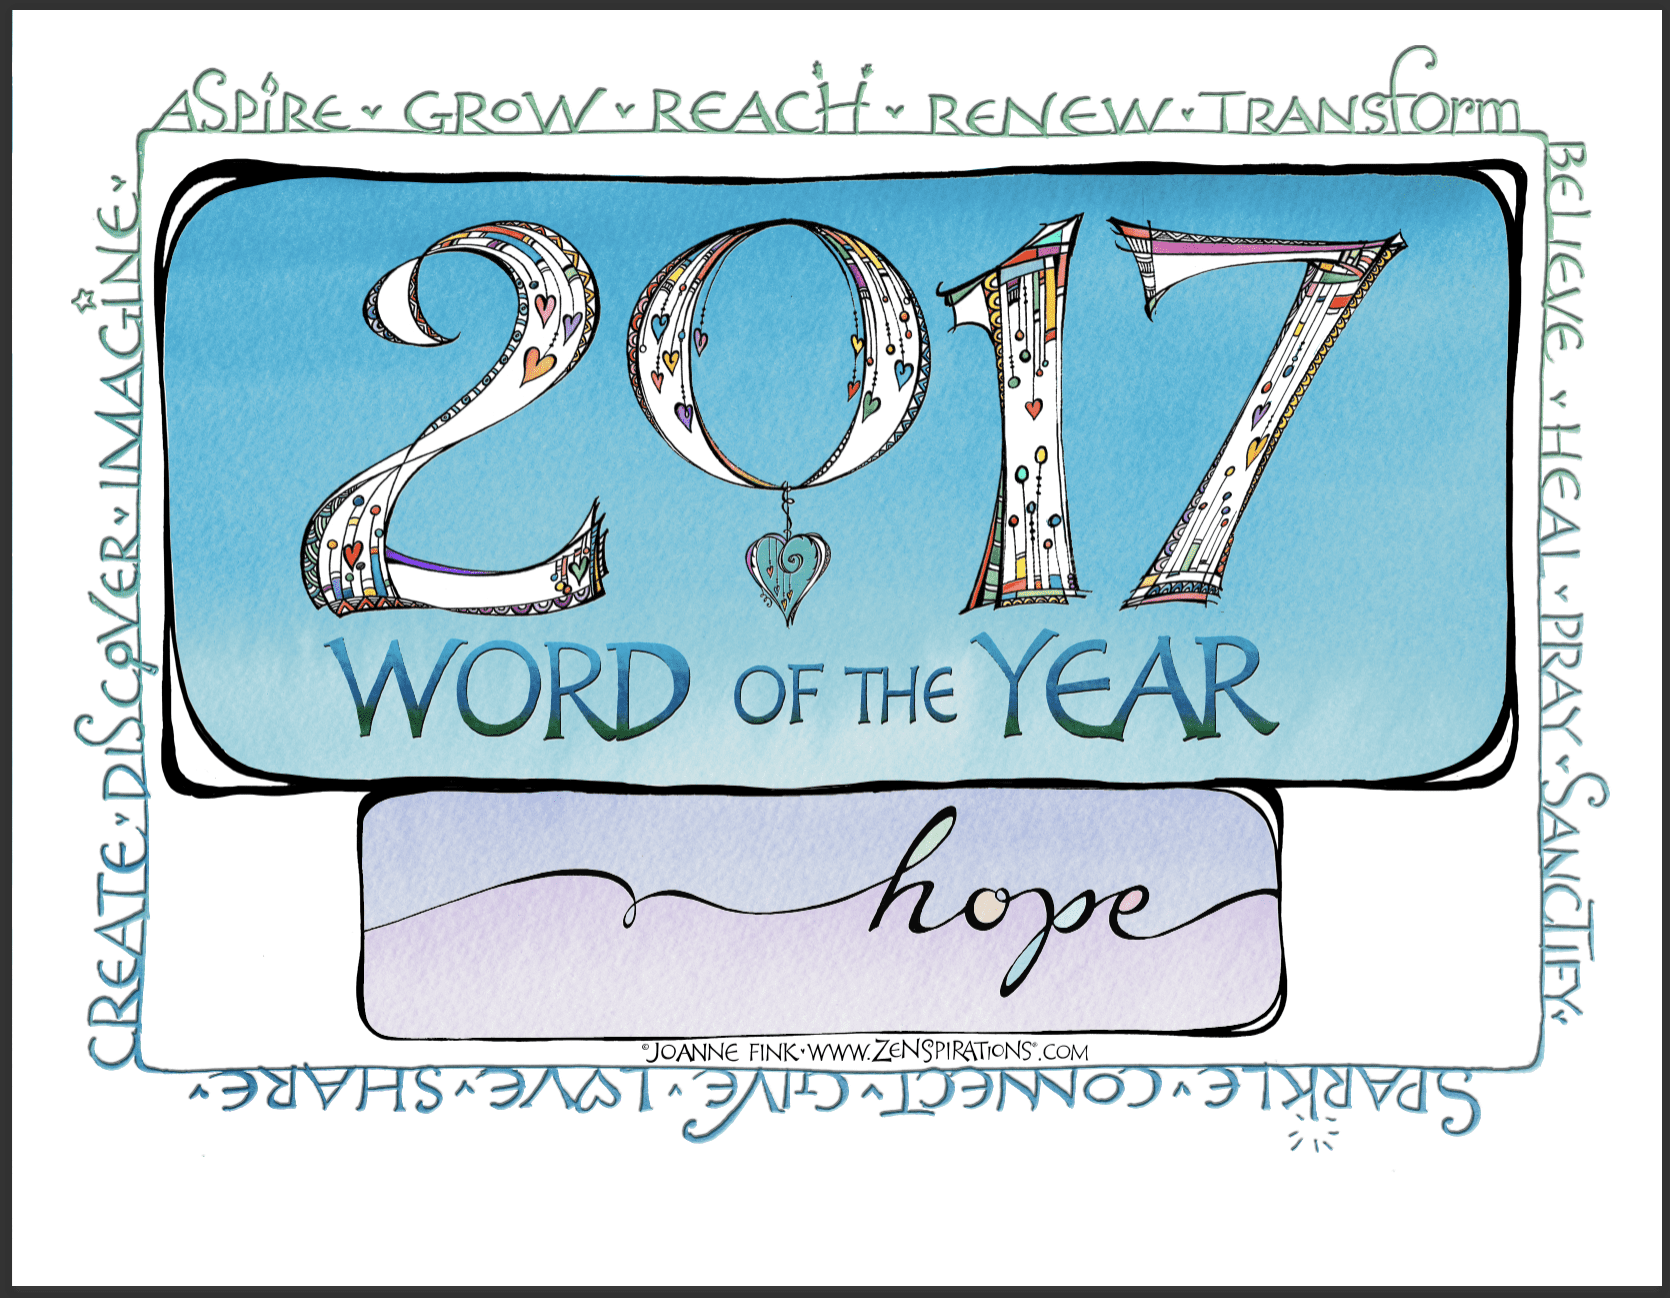 zenspirations_by_joanne_fink_blog_2017_word_of_the_year_full_color